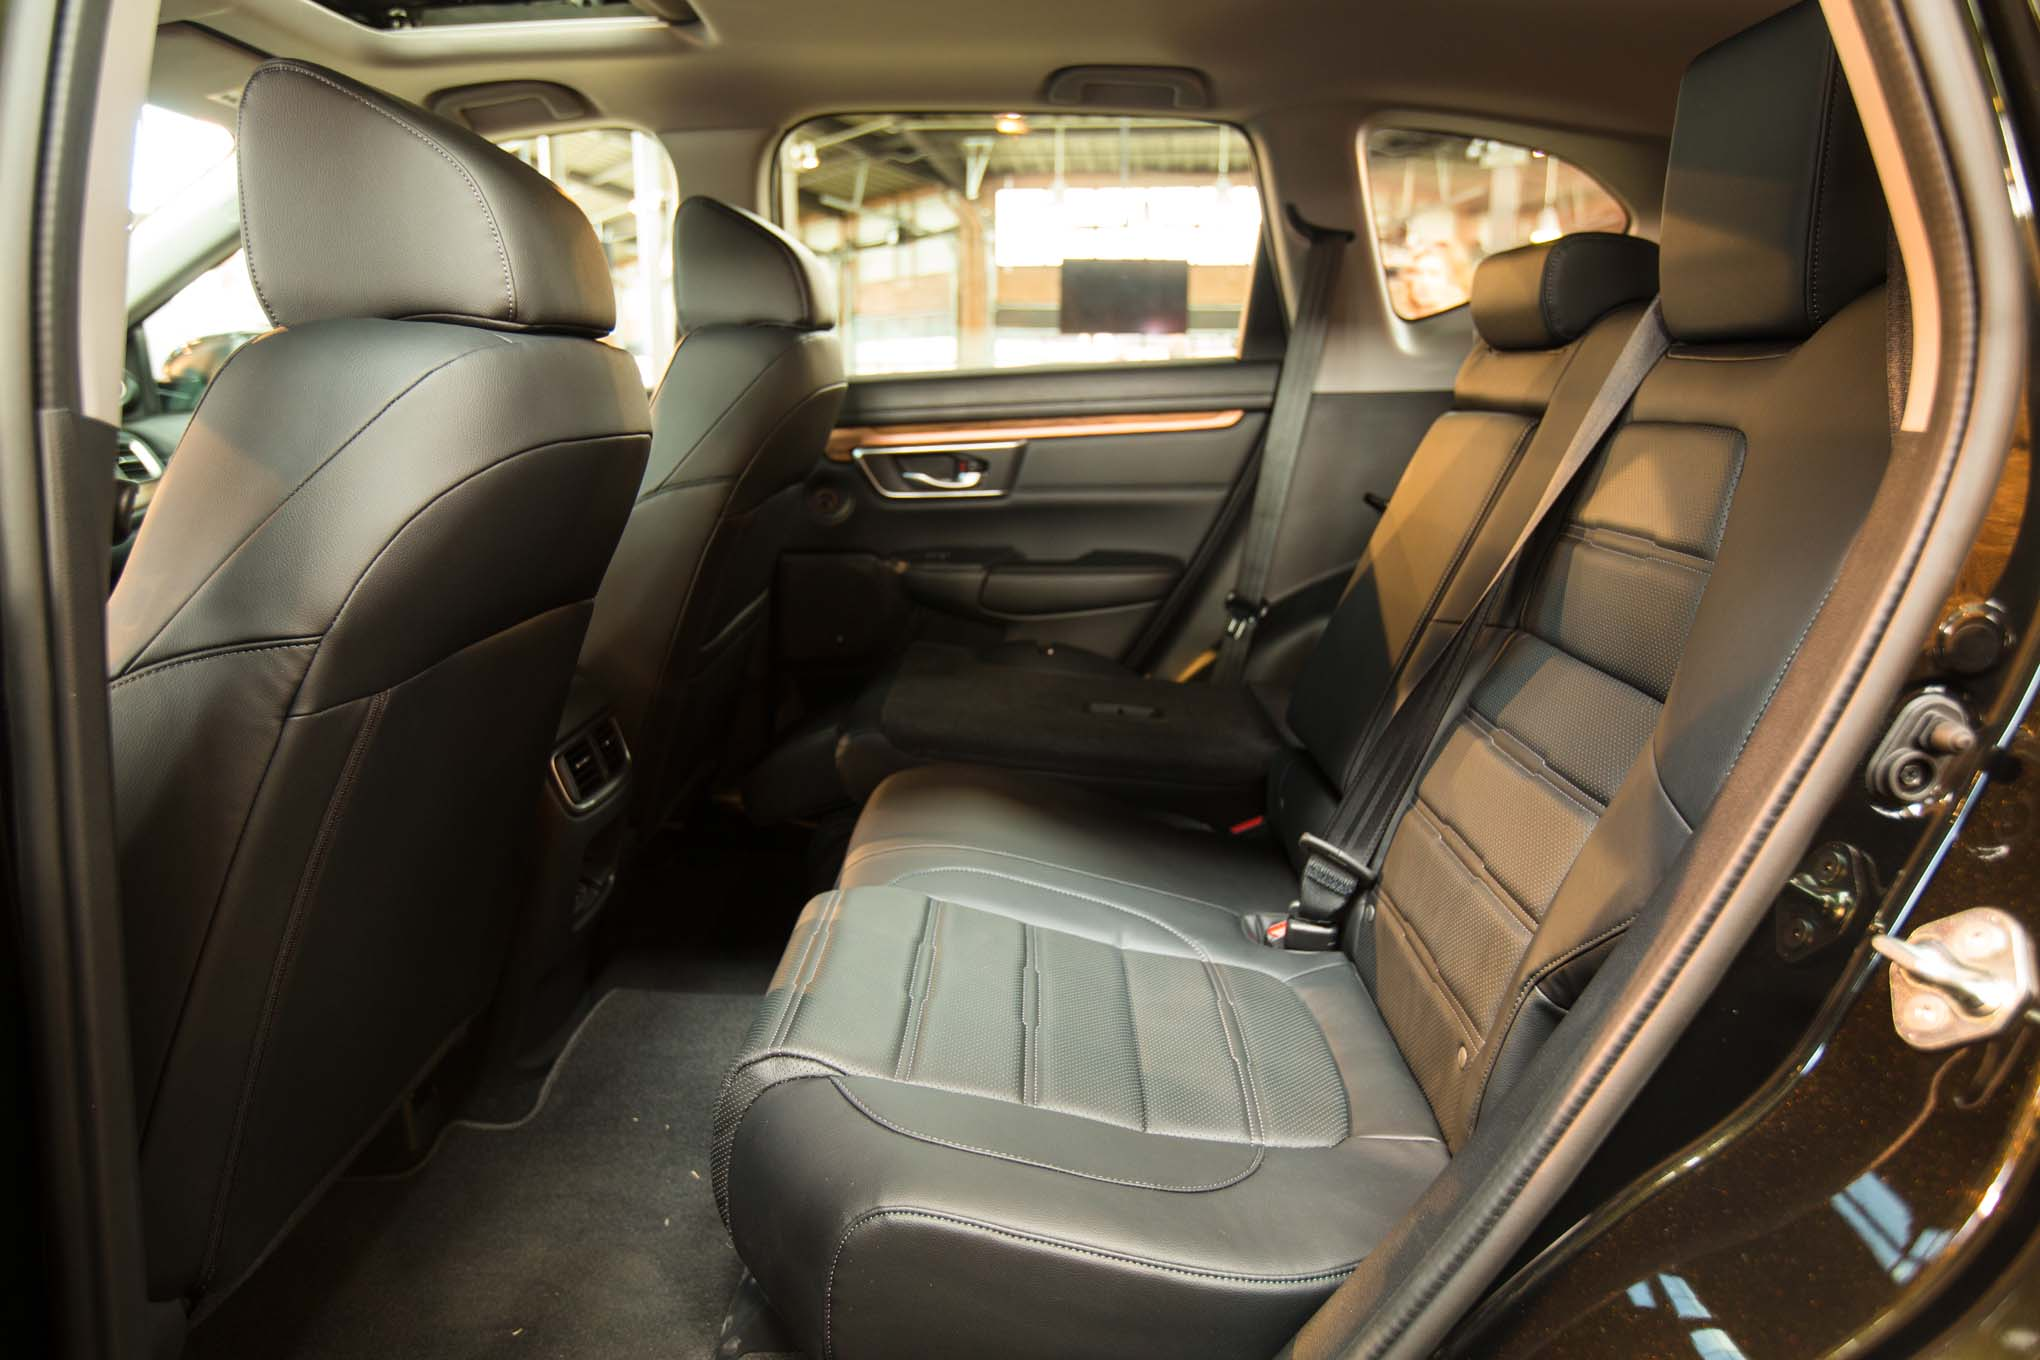 2017-honda-cr-v-rear-interior-seats-02